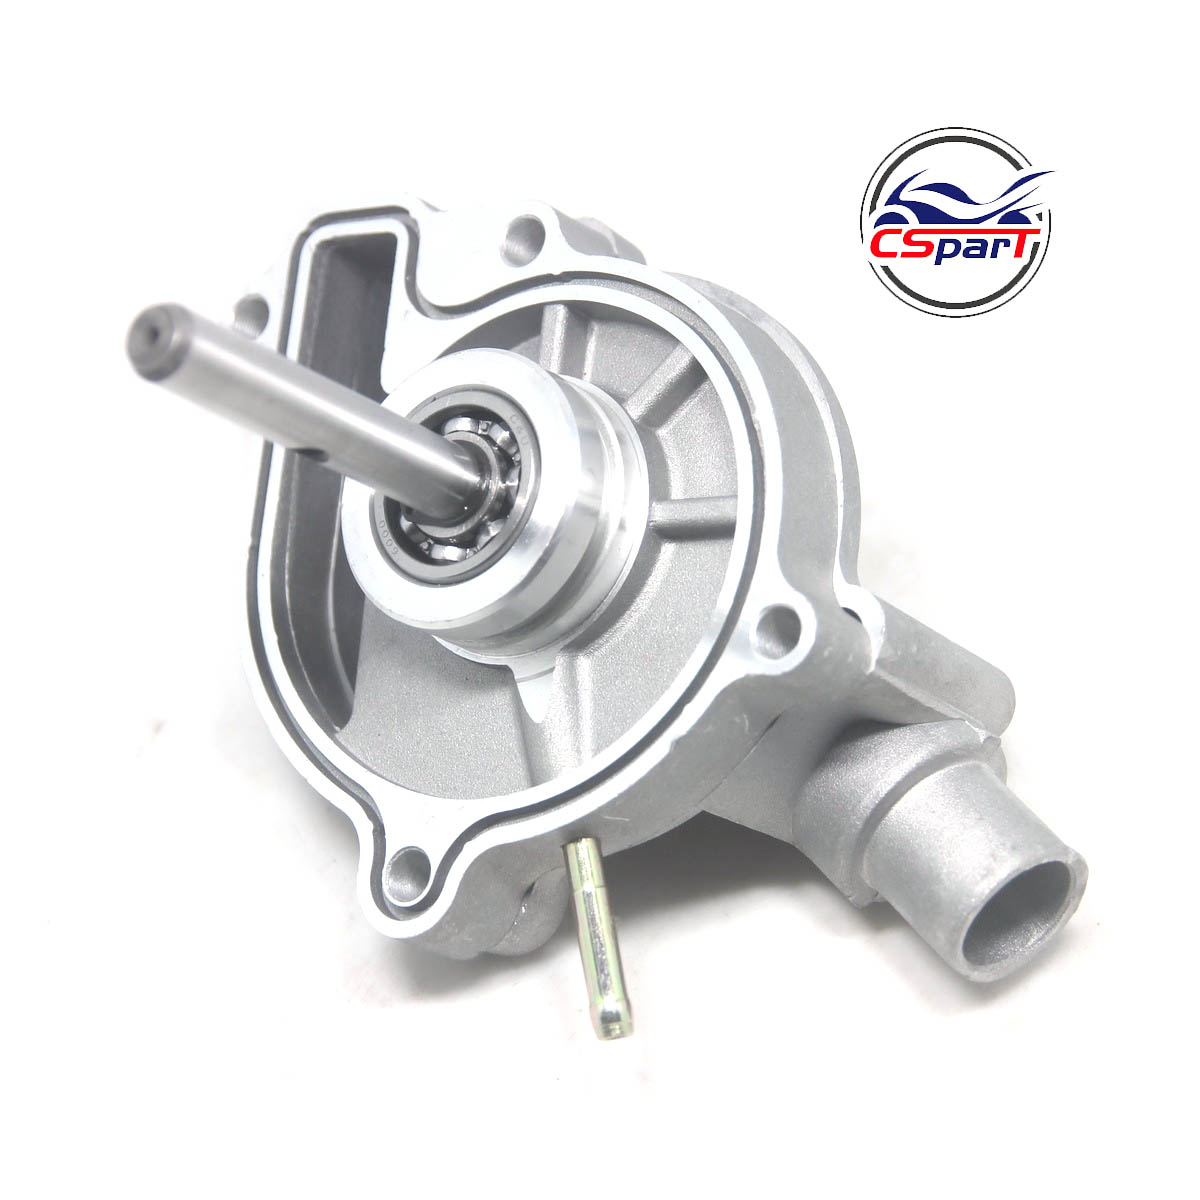 Water Pump Kit for <font><b>Hisun</b></font> HS <font><b>800</b></font> 800CC ATV <font><b>UTV</b></font> image